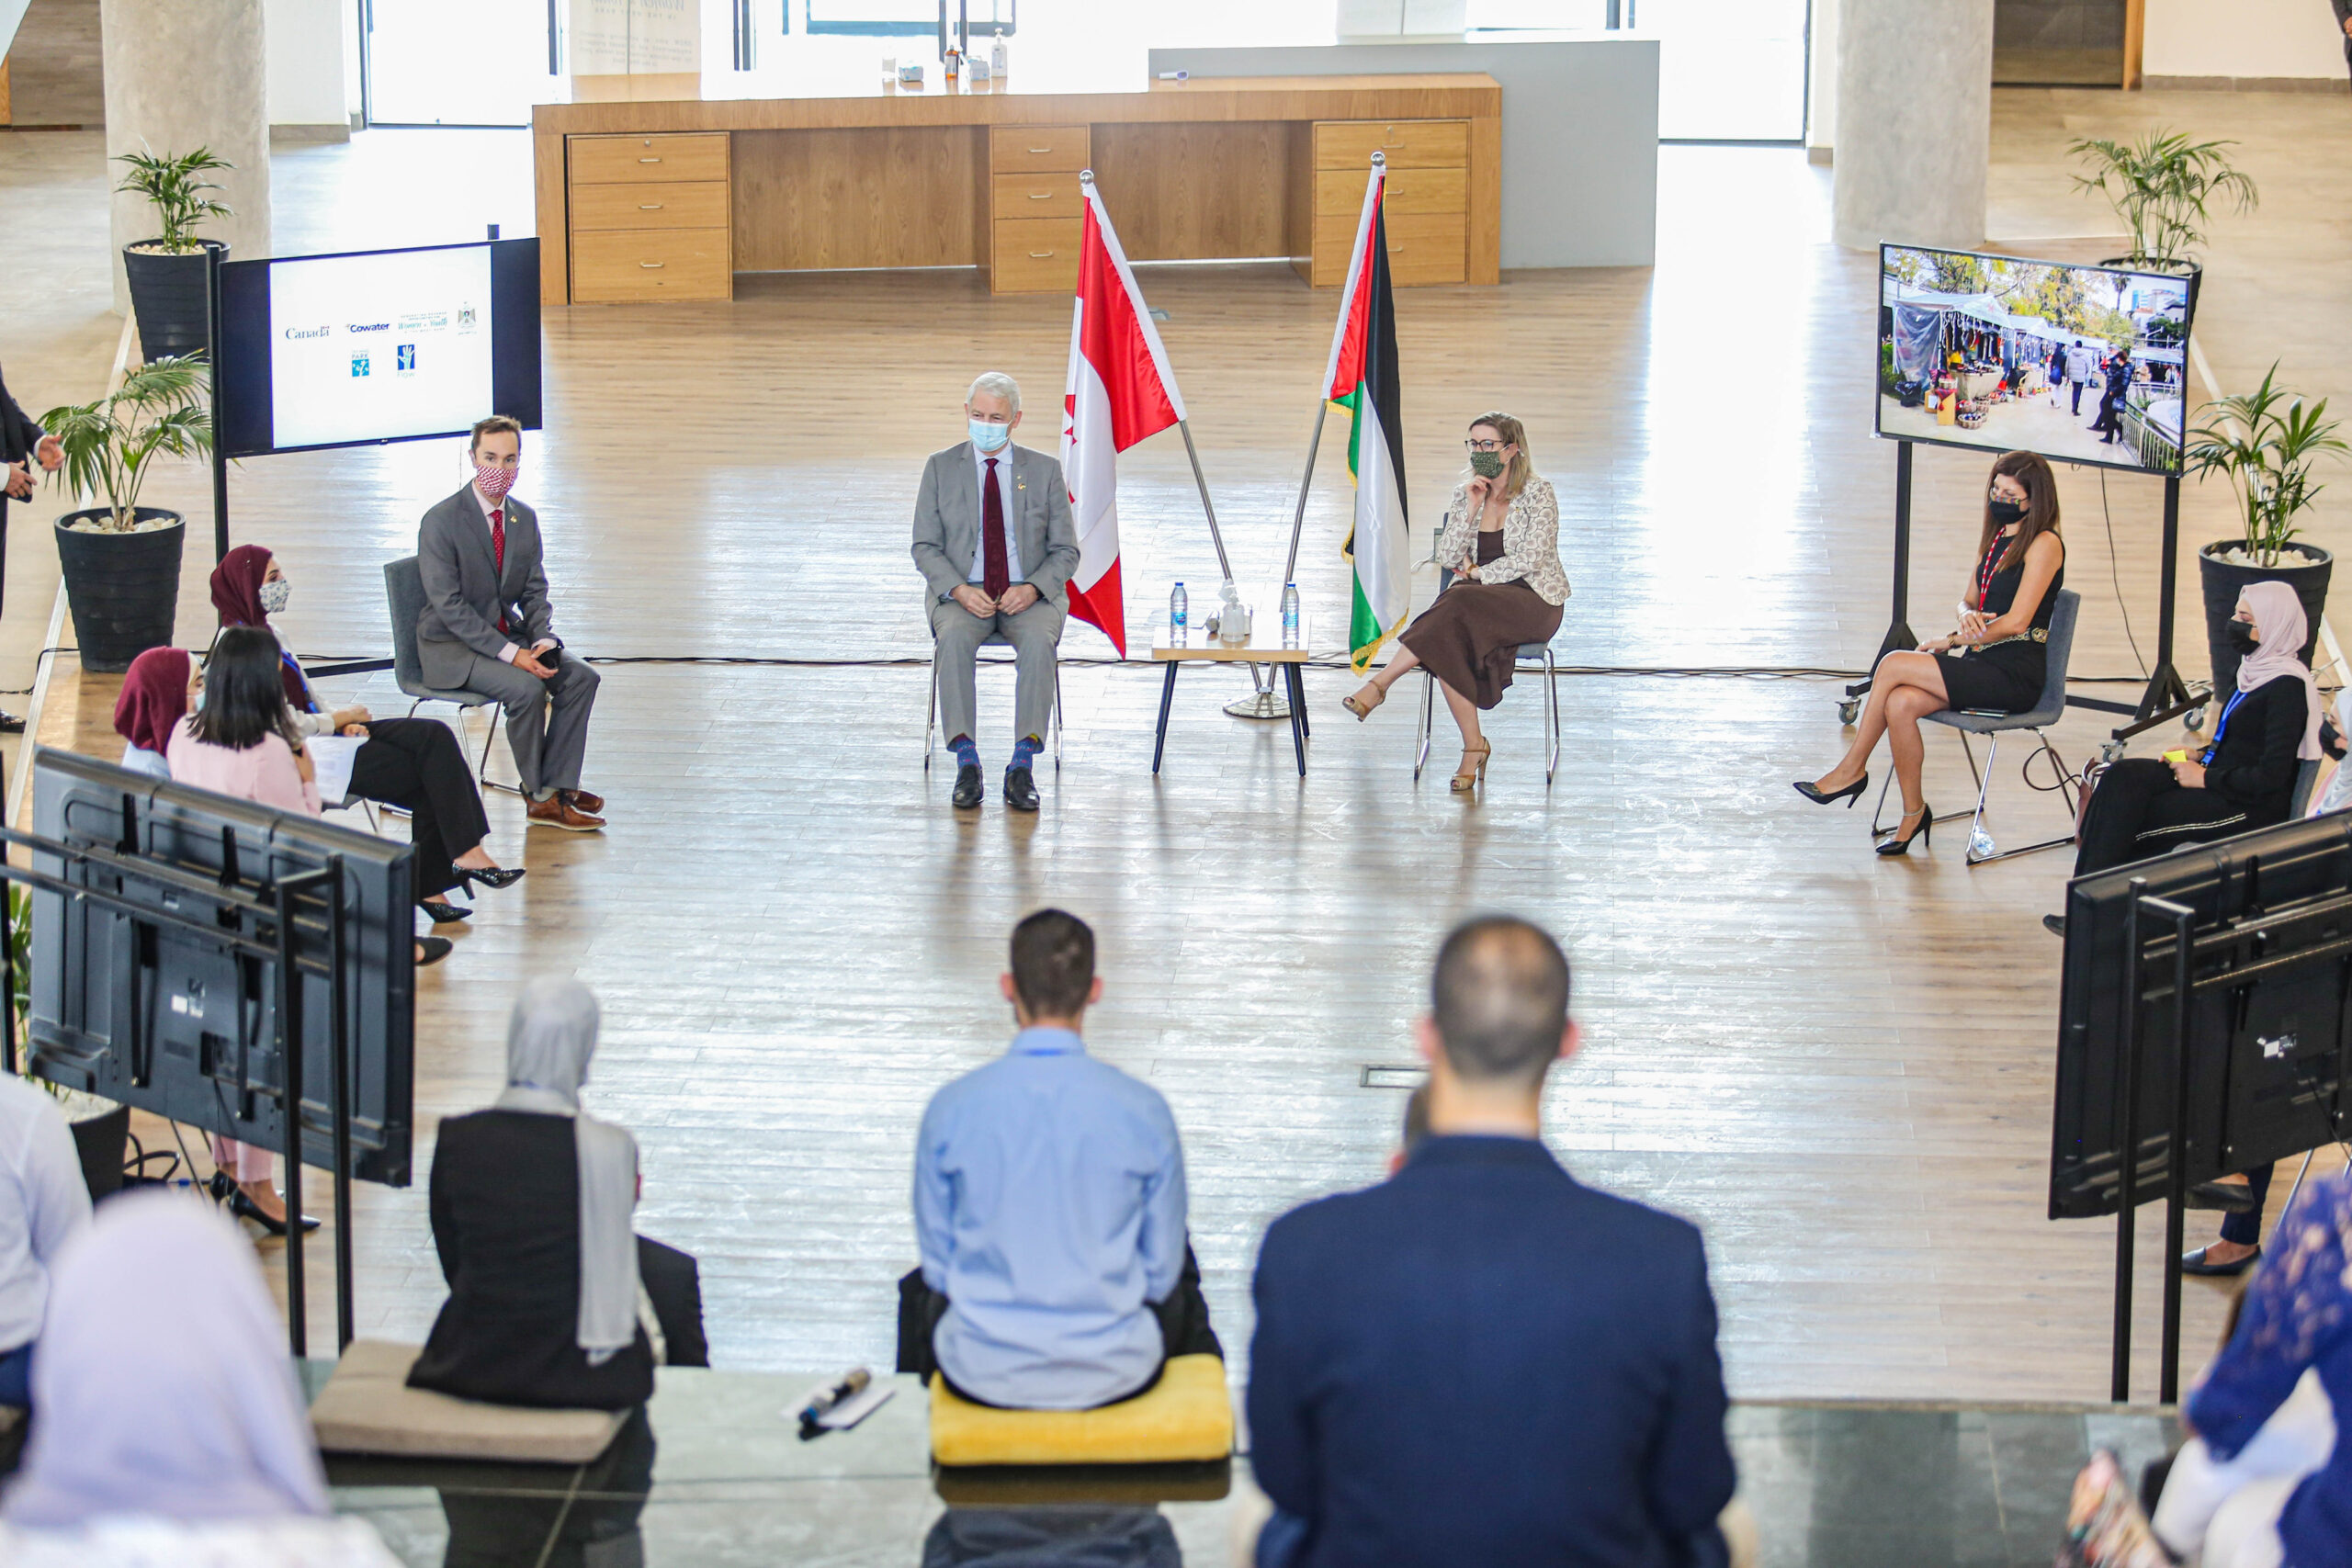 Minister Garneau witnesses the innovative impact of Canadian international assistance in the West Bank